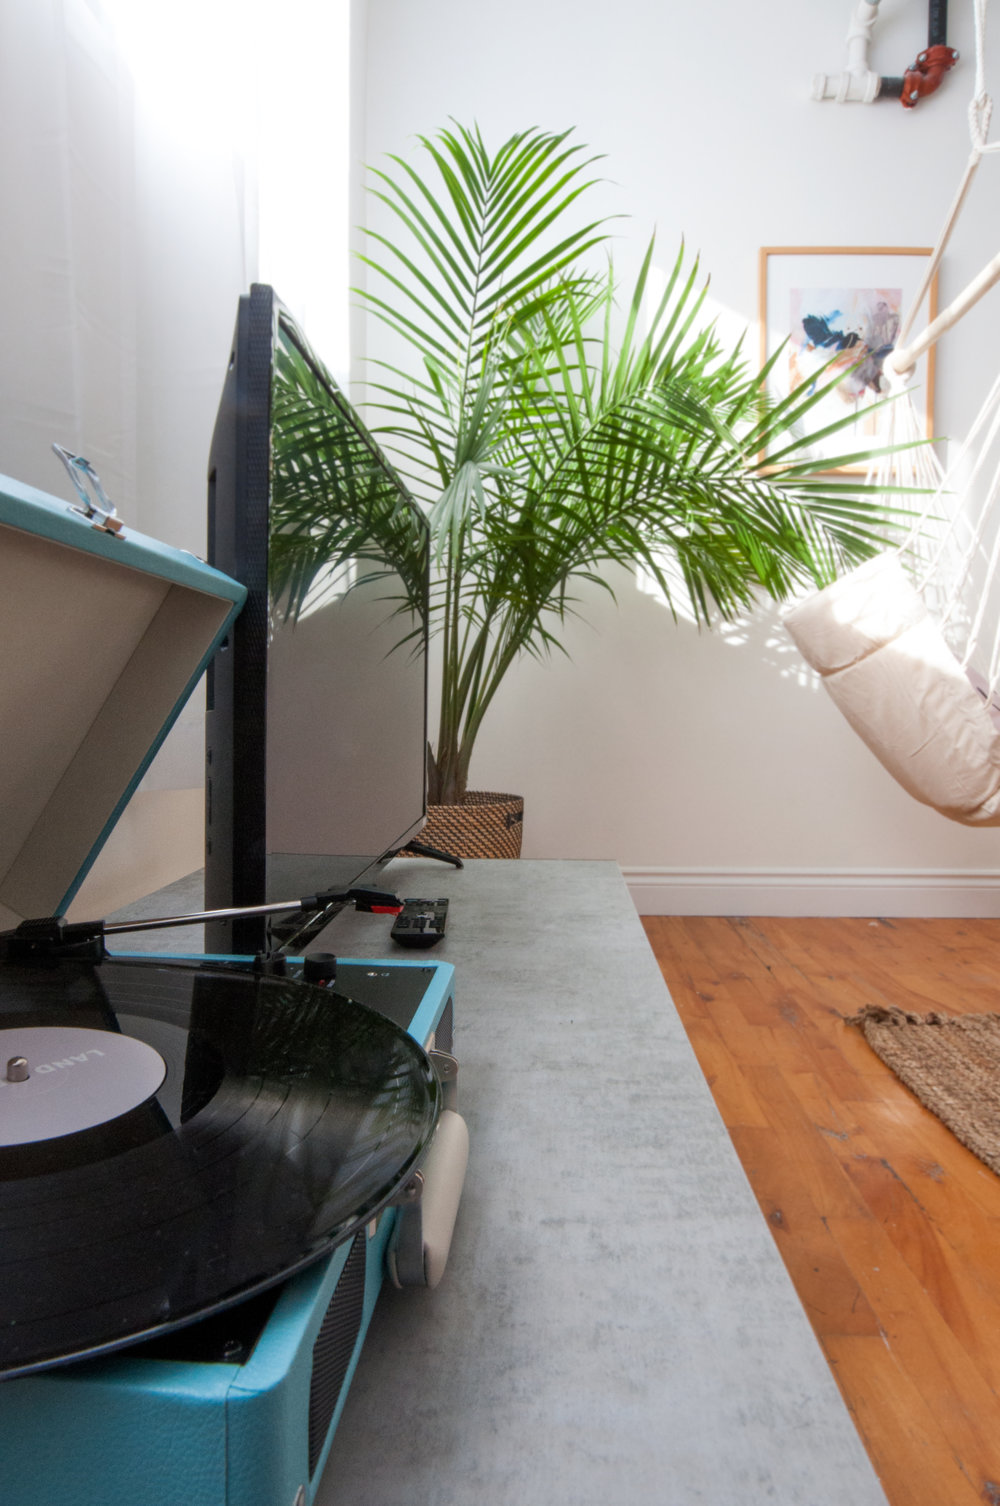 A portable set of speakers: keep the good times rolling - Whatever space your guests choose to chill out in the music can follow.  Add pieces like a bluetooth speaker or a record player complete with records by local bands.